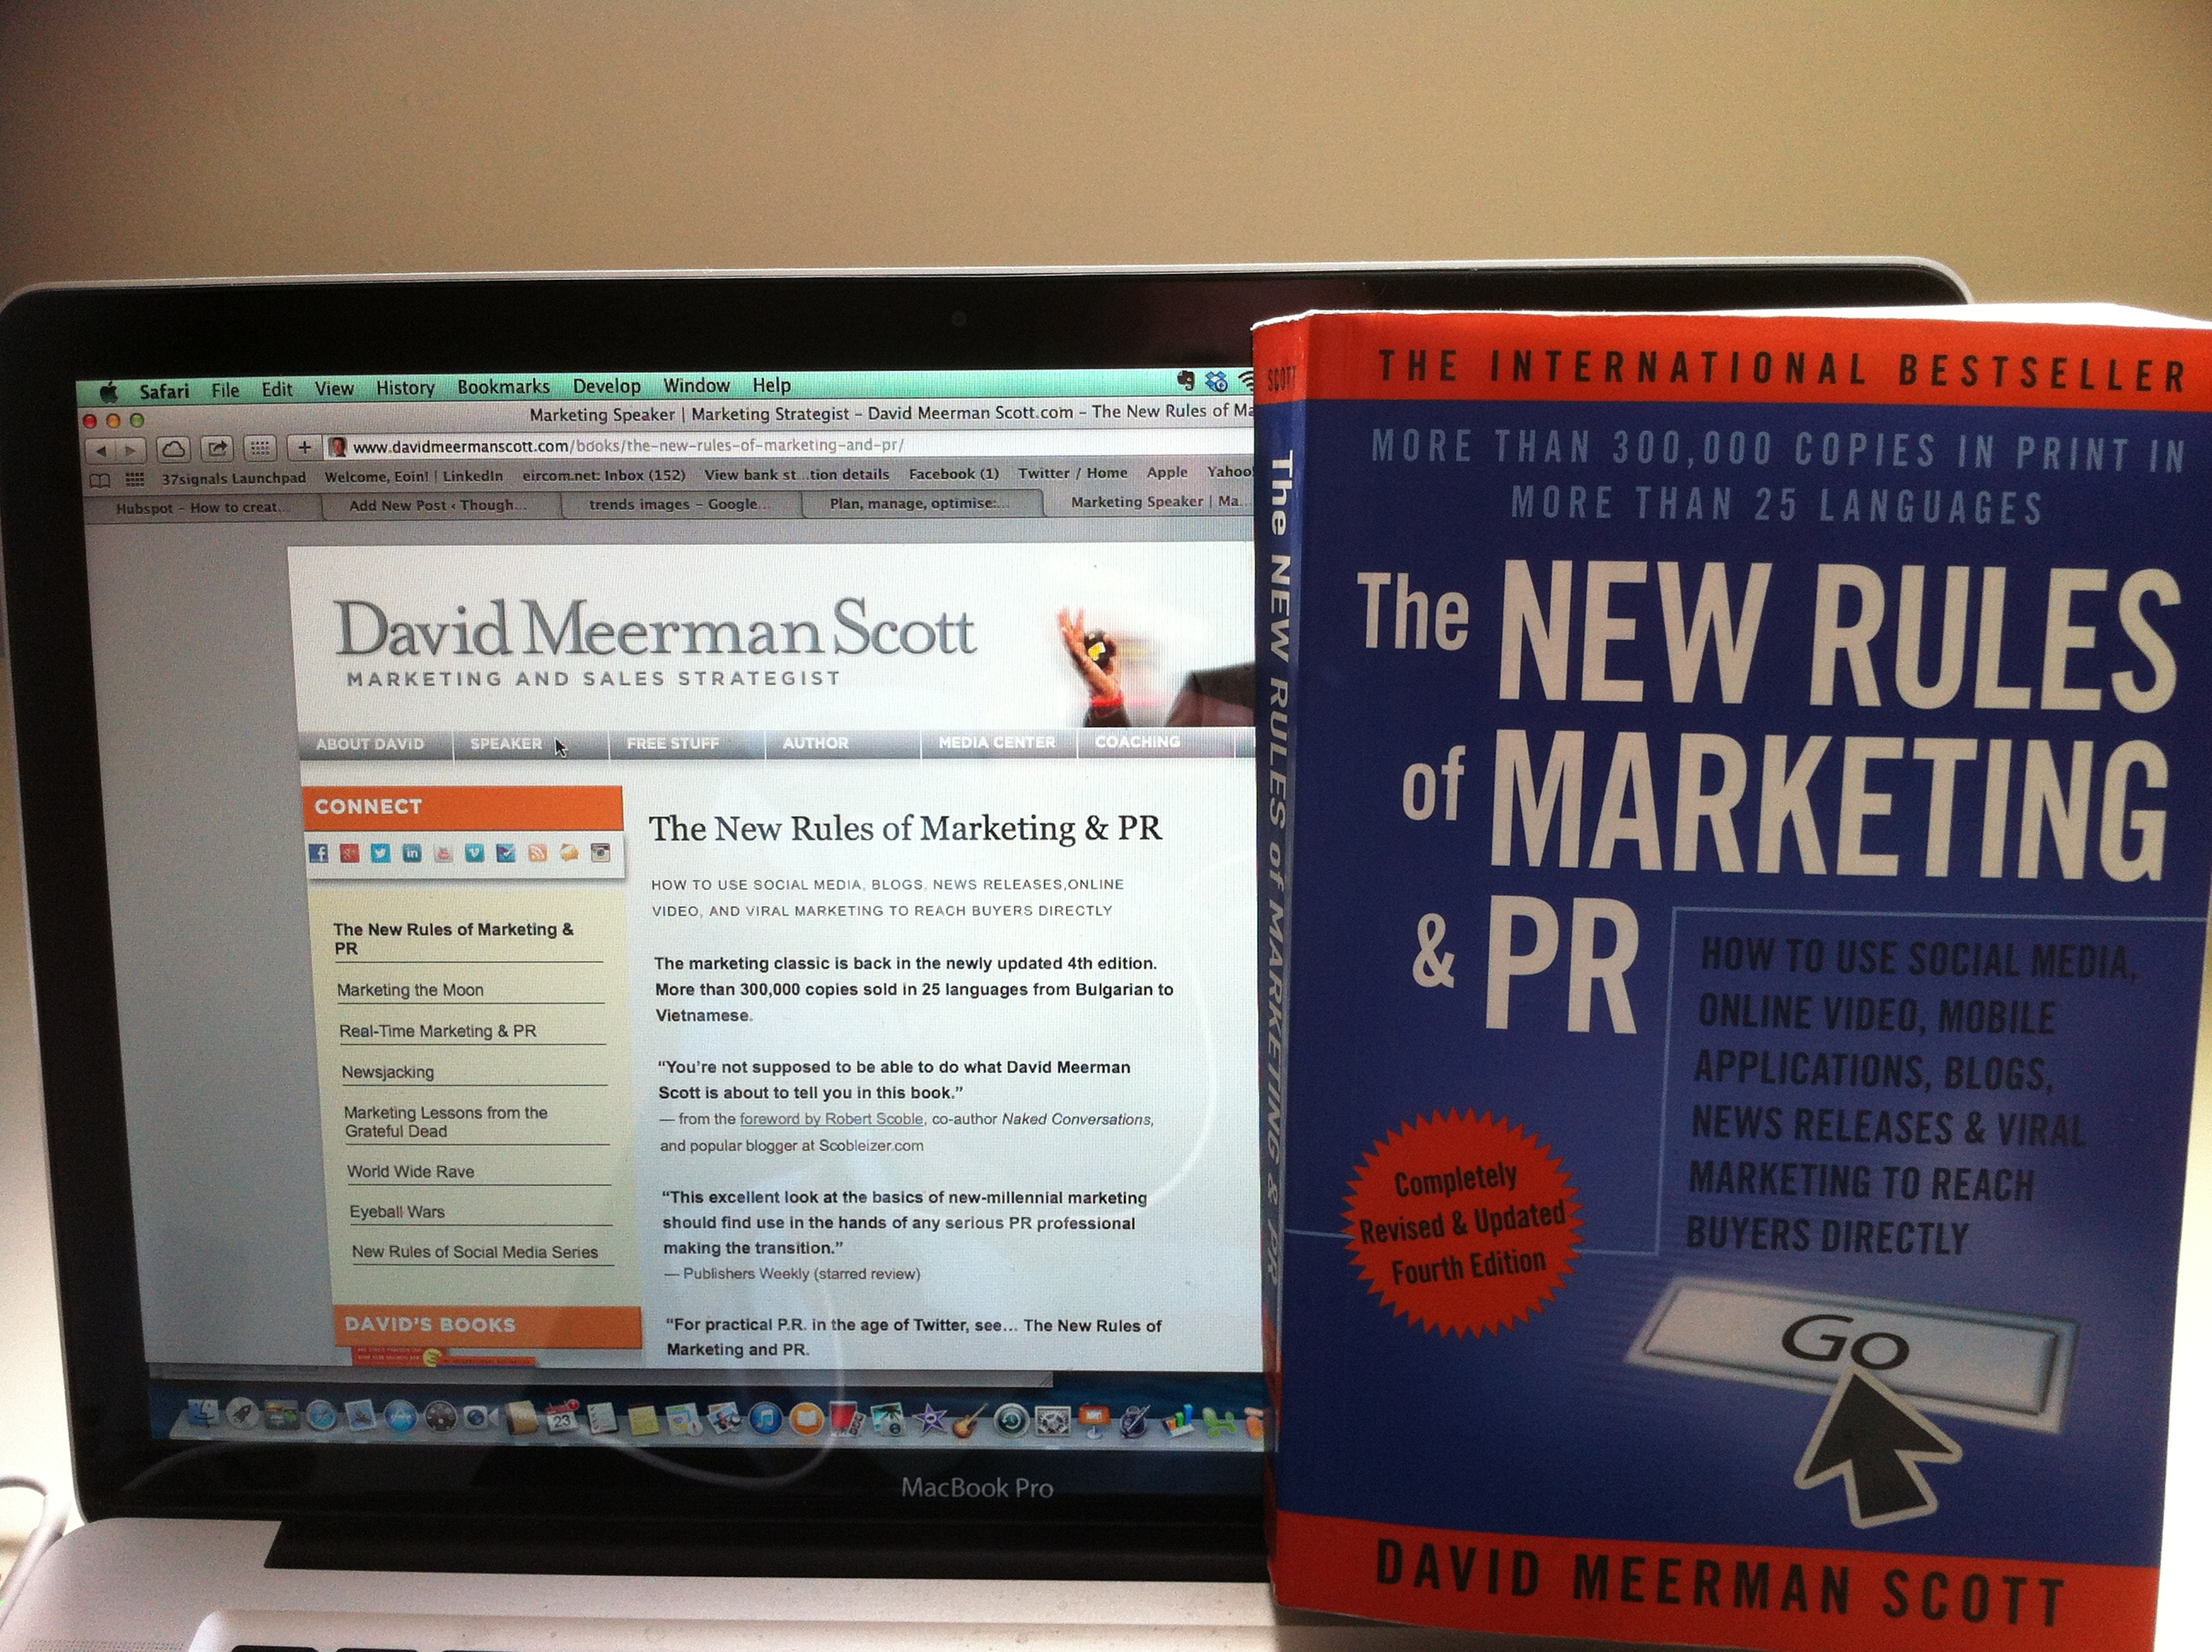 Book cover of the New Rules of Marketing and PR